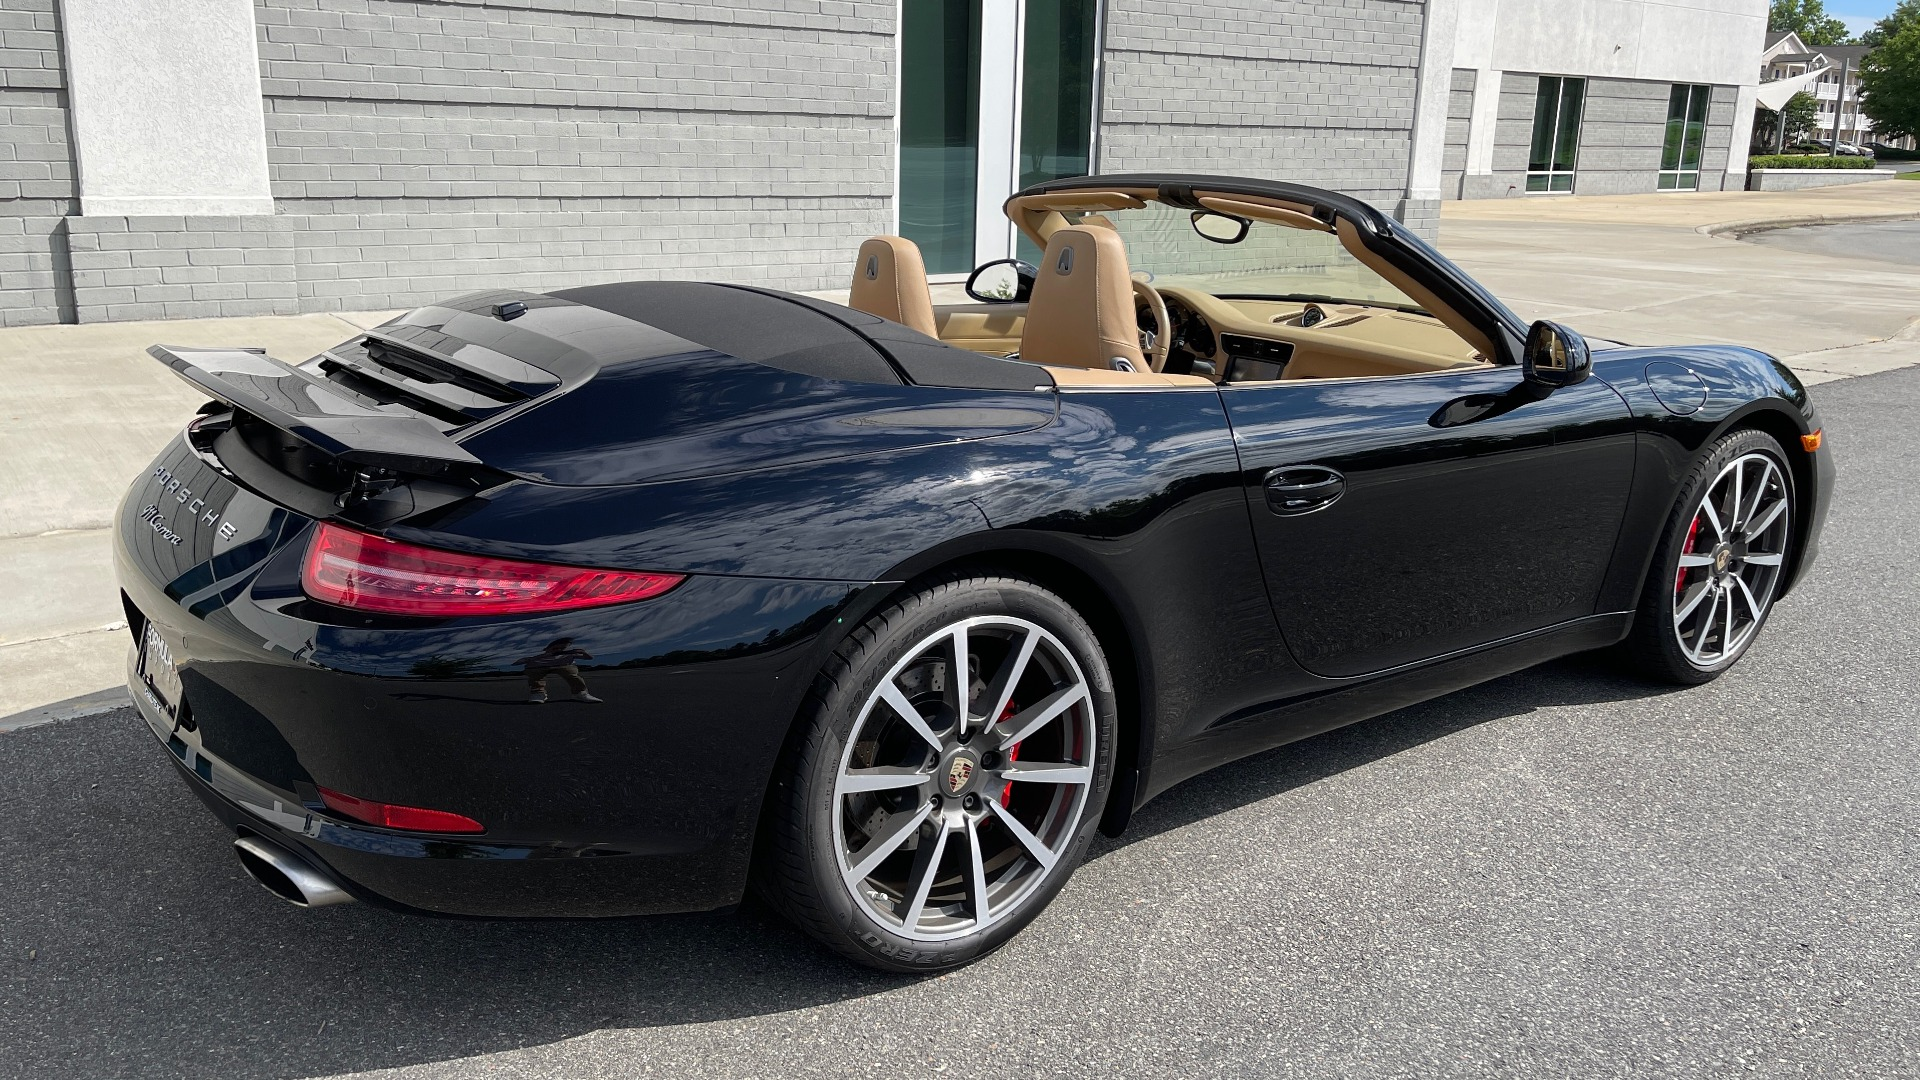 Used 2013 Porsche 911 CARRERA CABRIOLET / PDK / NAV / BOSE / HTD STS / PDLS for sale Sold at Formula Imports in Charlotte NC 28227 4